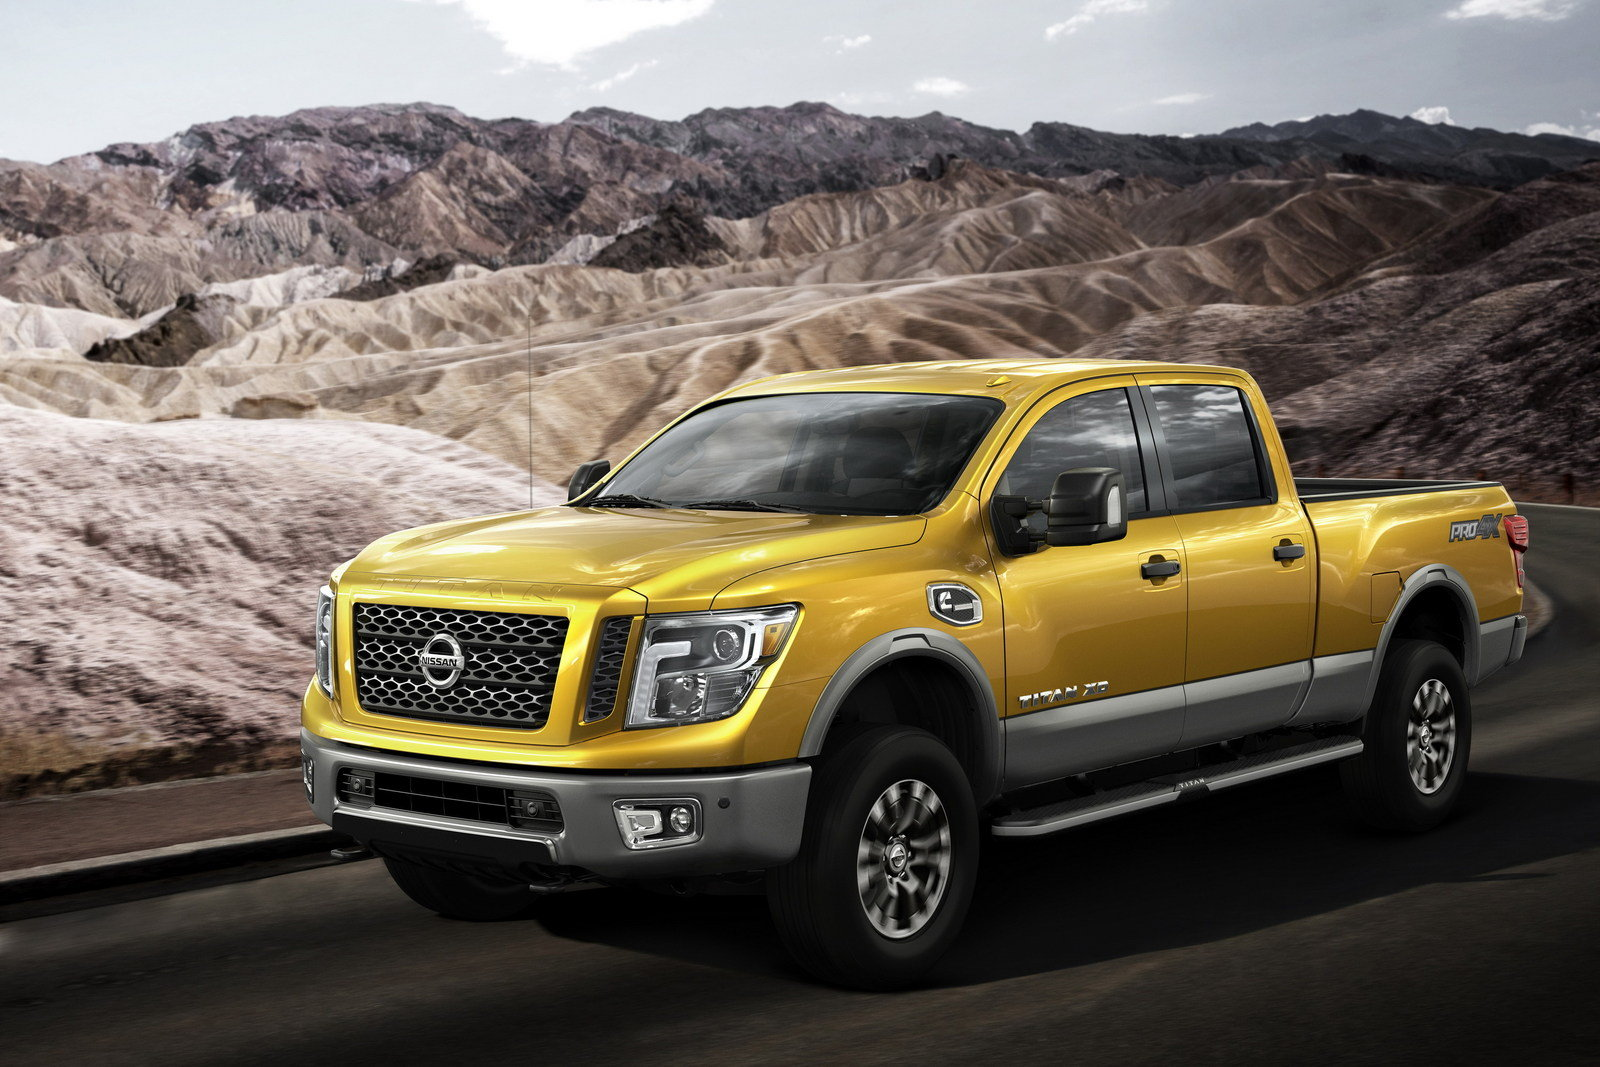 2016 nissan titan xd picture 610099 truck review top speed. Black Bedroom Furniture Sets. Home Design Ideas